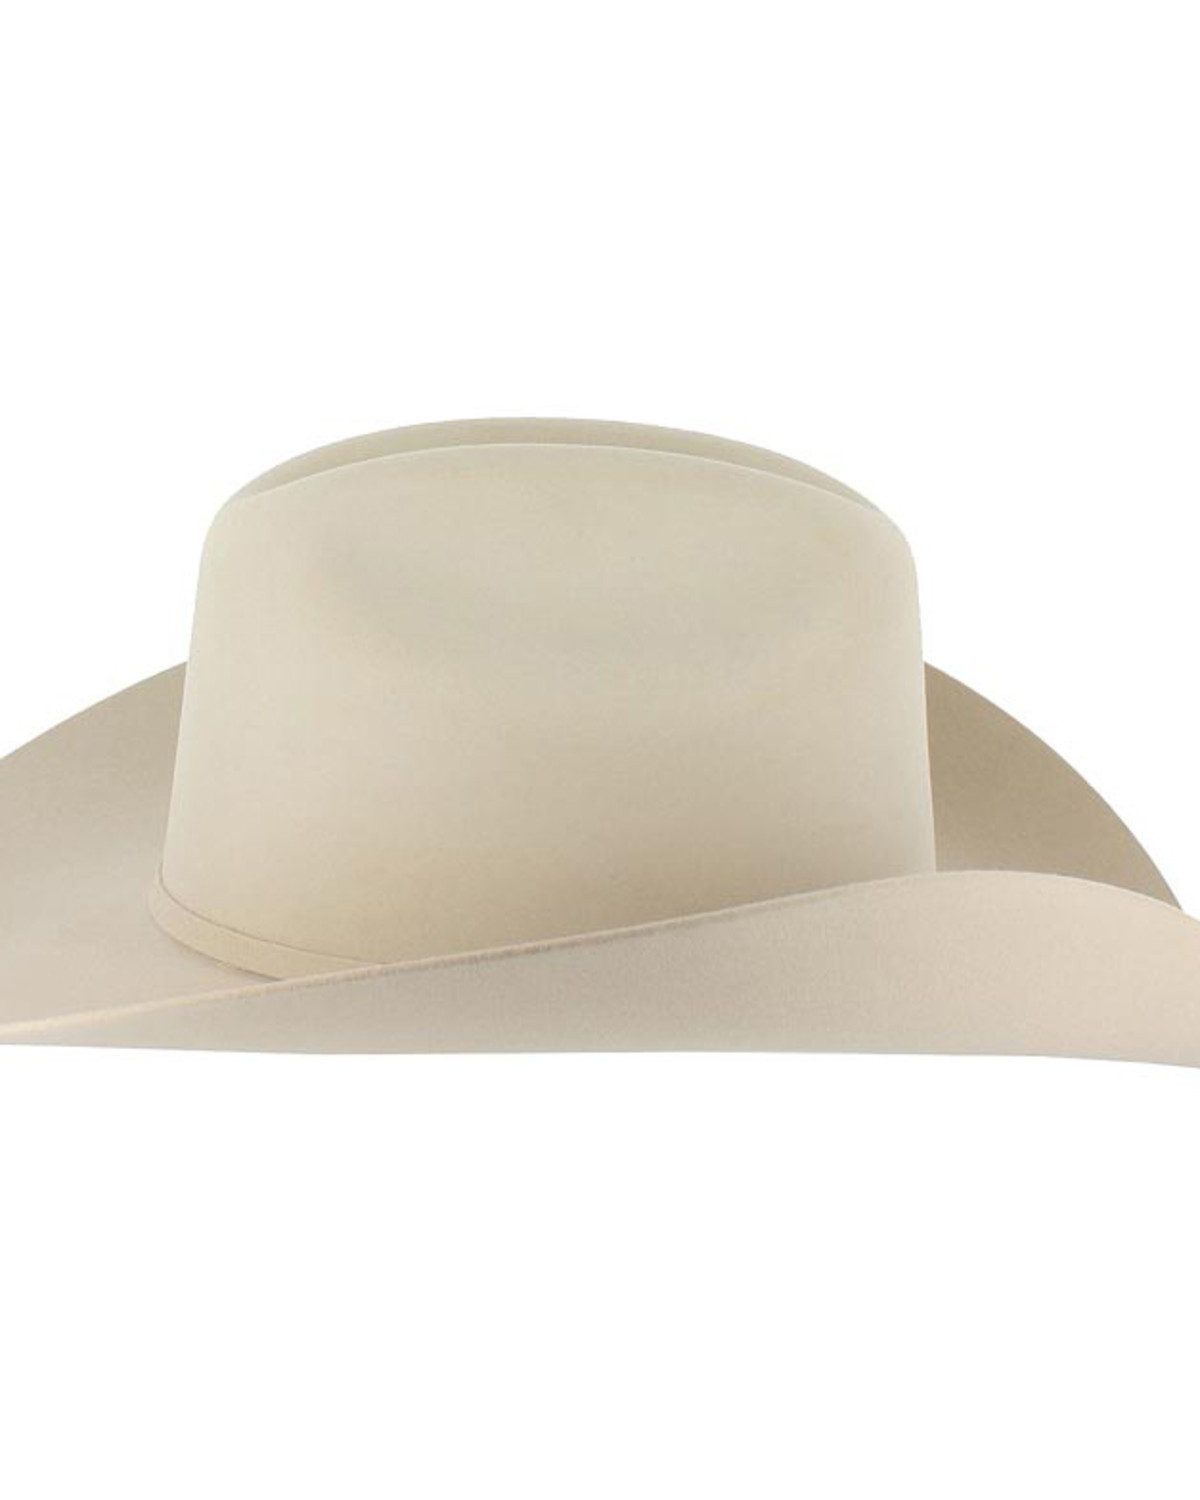 1ed8ebf87a745 Cody James Men s 5X Silver Belly Felt Cowboy Hat - Country Outfitter